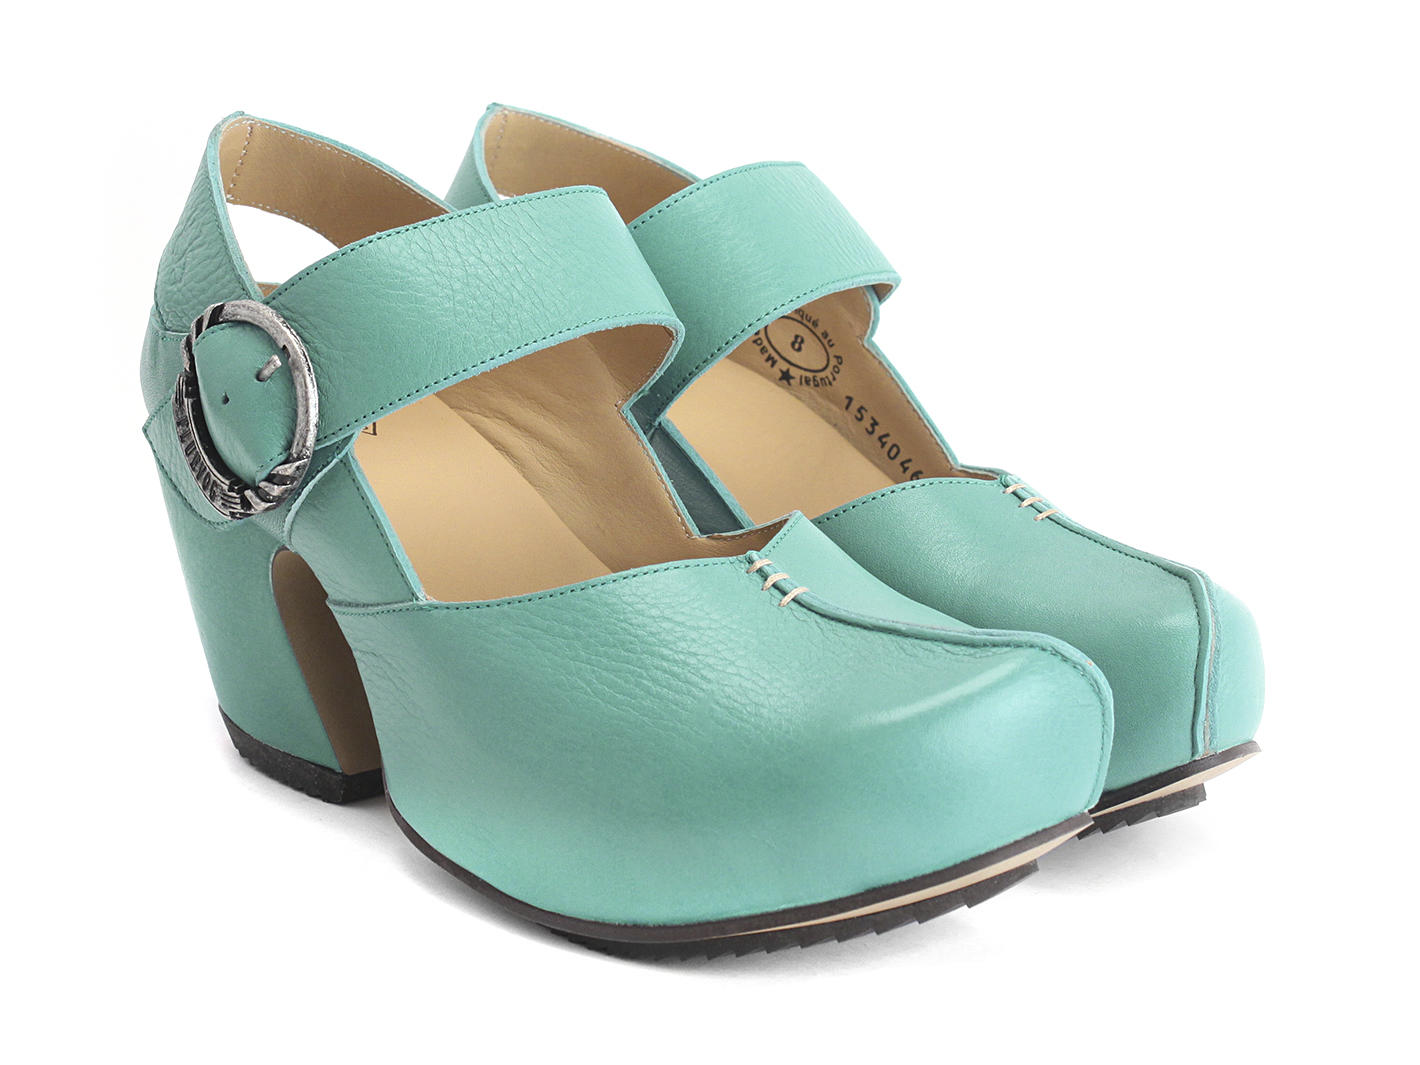 Turquoise Shoes. Add a splash of color to your outfit with a pair of turquoise shoes. Whether you go with a pair of stiletto pumps or simple flats, those bold-hued shoes are sure to attract plenty of attention and show off your sense of style.